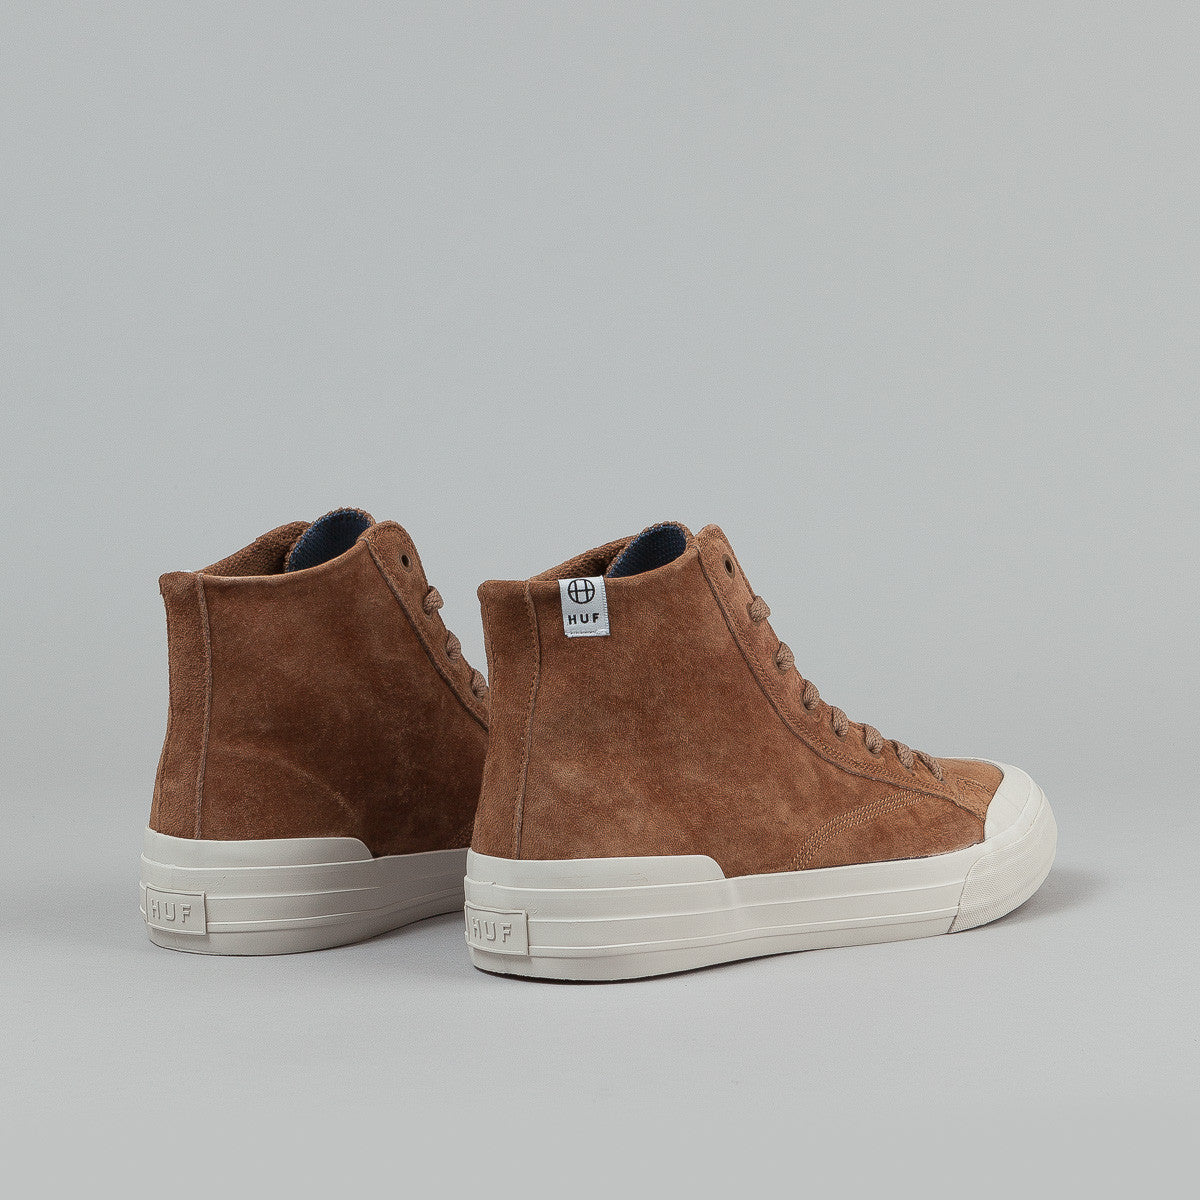 HUF Classic Hi Shoes - Toffee